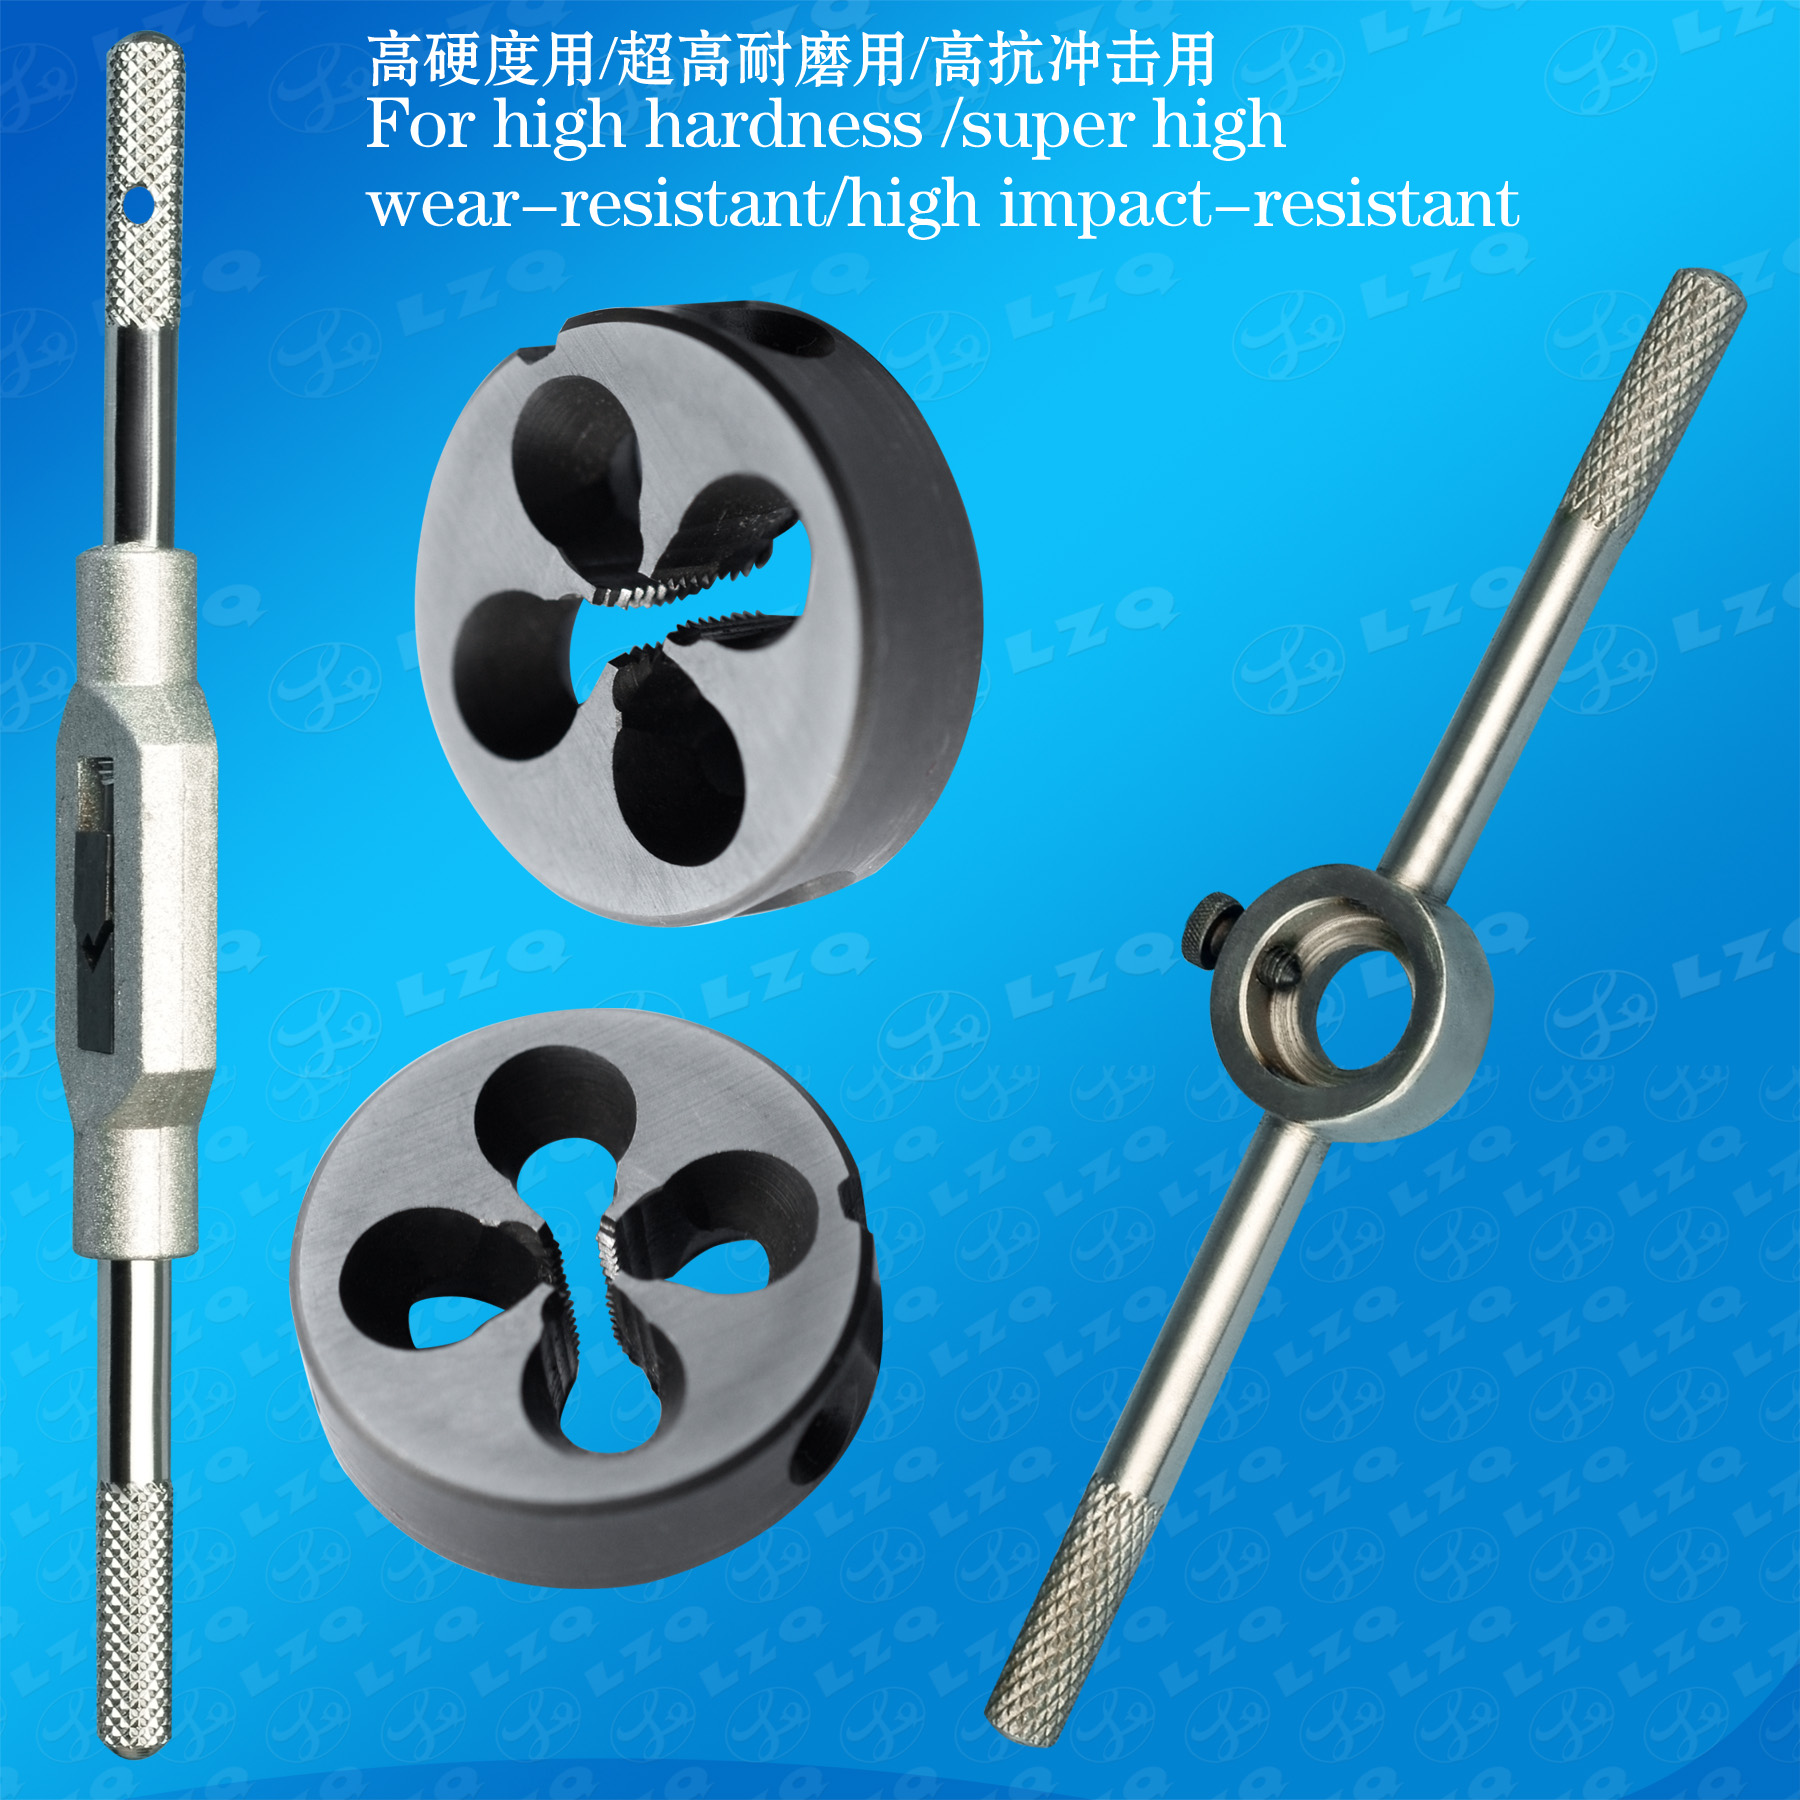 Carbide Screw Tap, Tungsten Steel Screw Tap, Drilling And Tapping Screw Tap